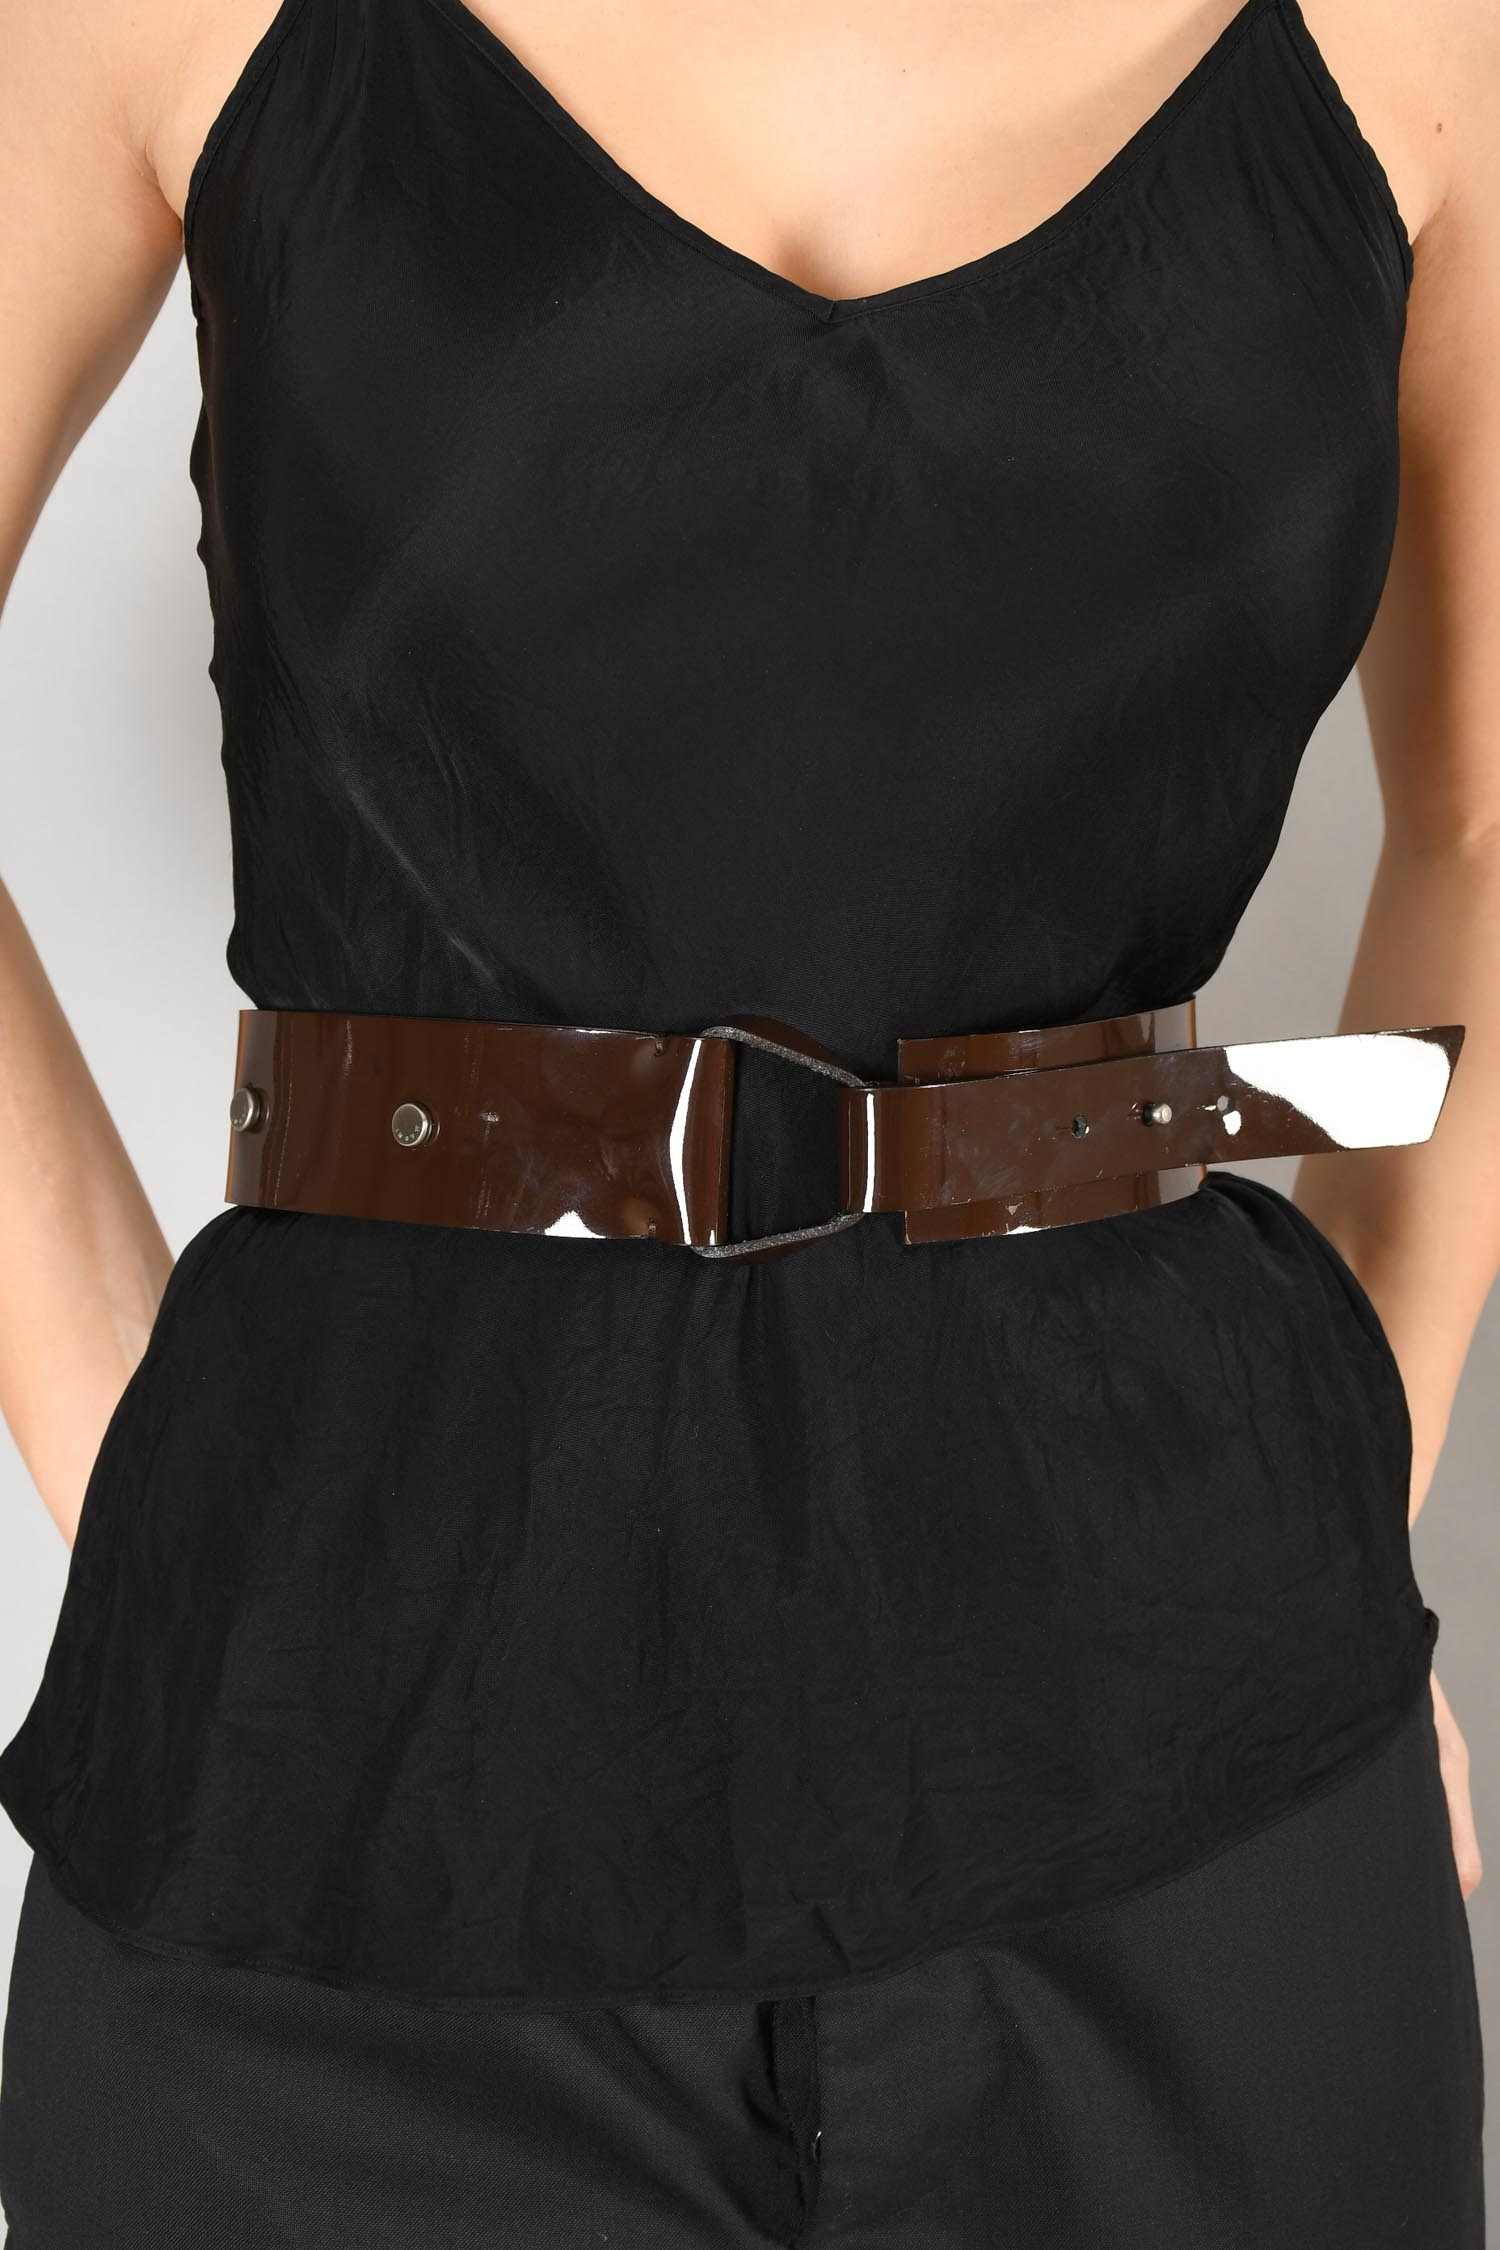 Marni Brown Patent Leather Belt Size 70